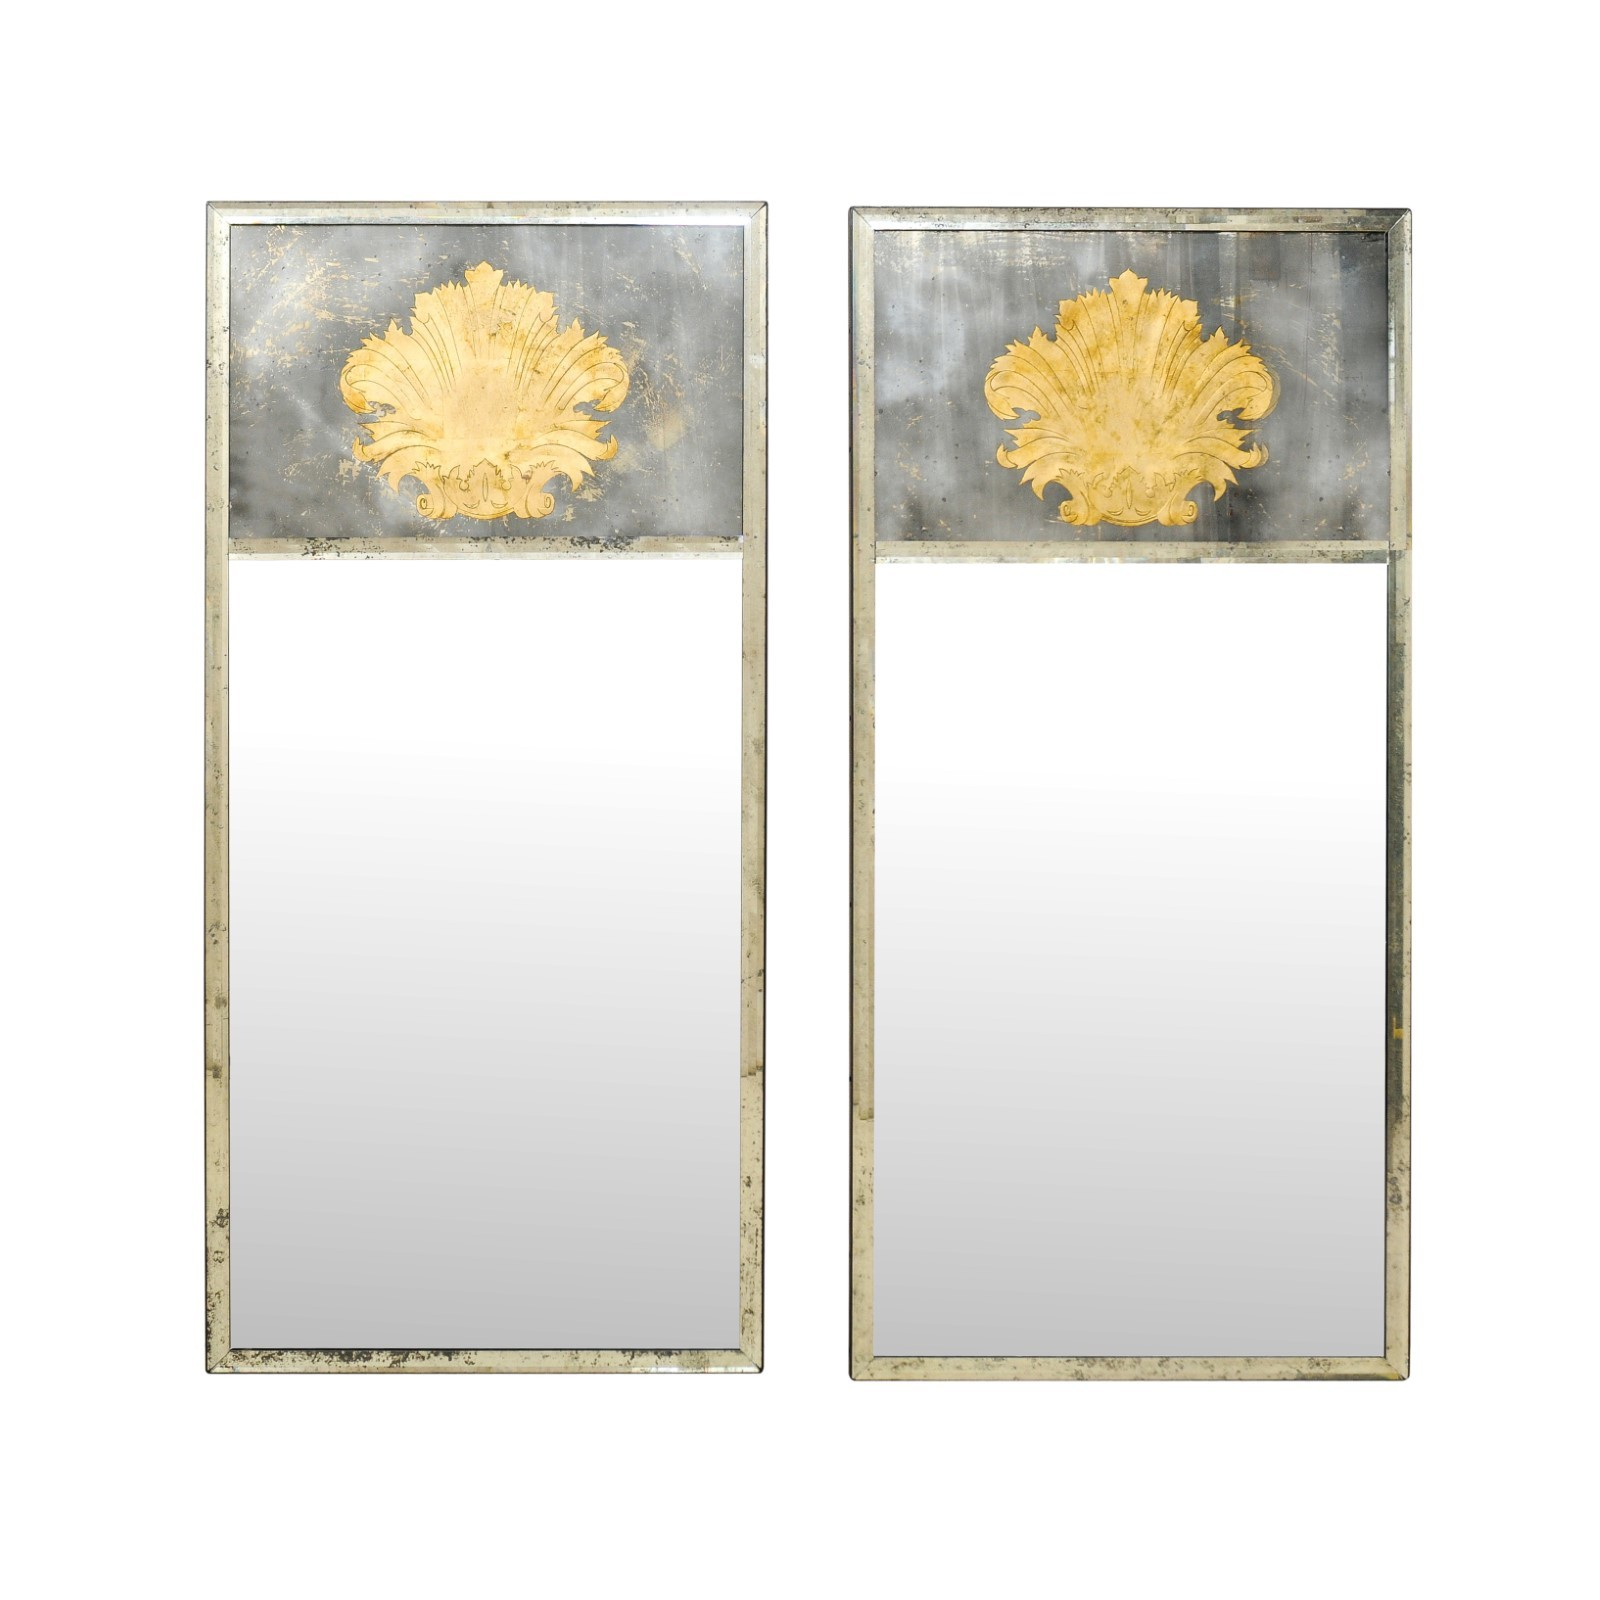 Pair of Tall Mirrors w/Fanned Acanthus Leaf